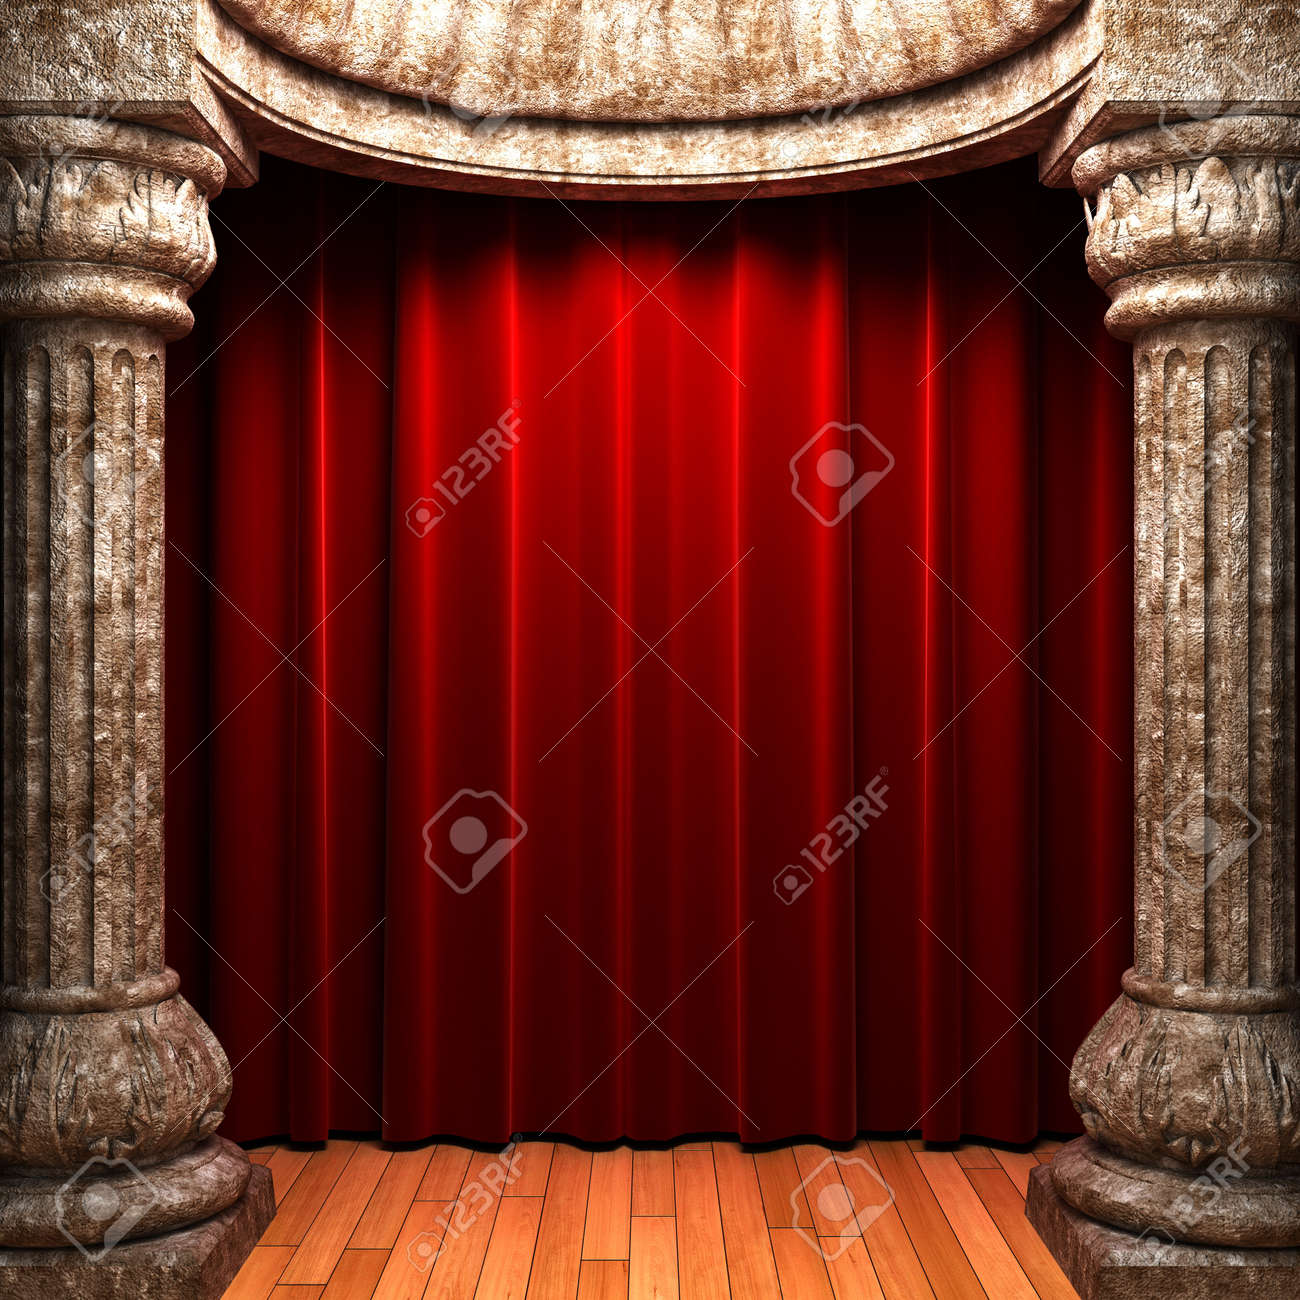 Red velvet curtains stage - Stock Photo Red Velvet Curtains Behind The Stone Columns